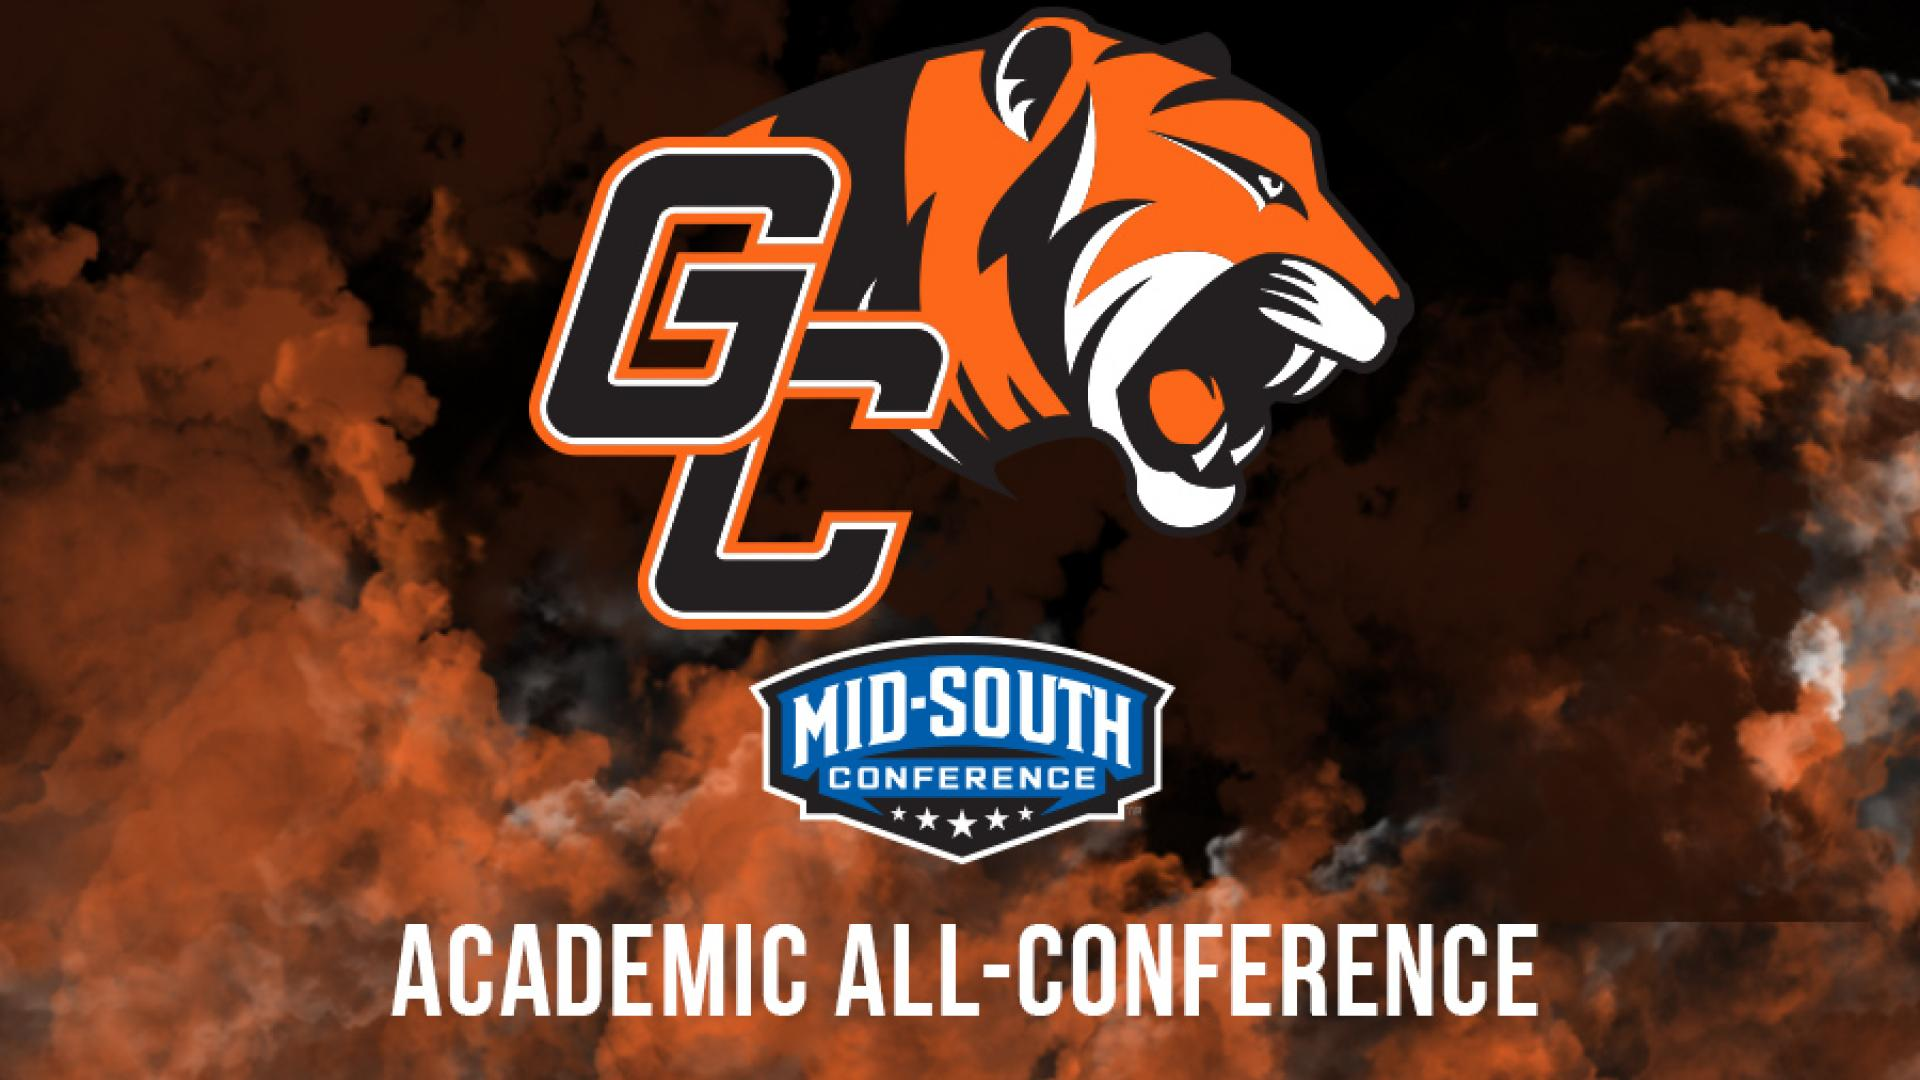 Nine on Women's Team Make Mid-South Academic All-Conference